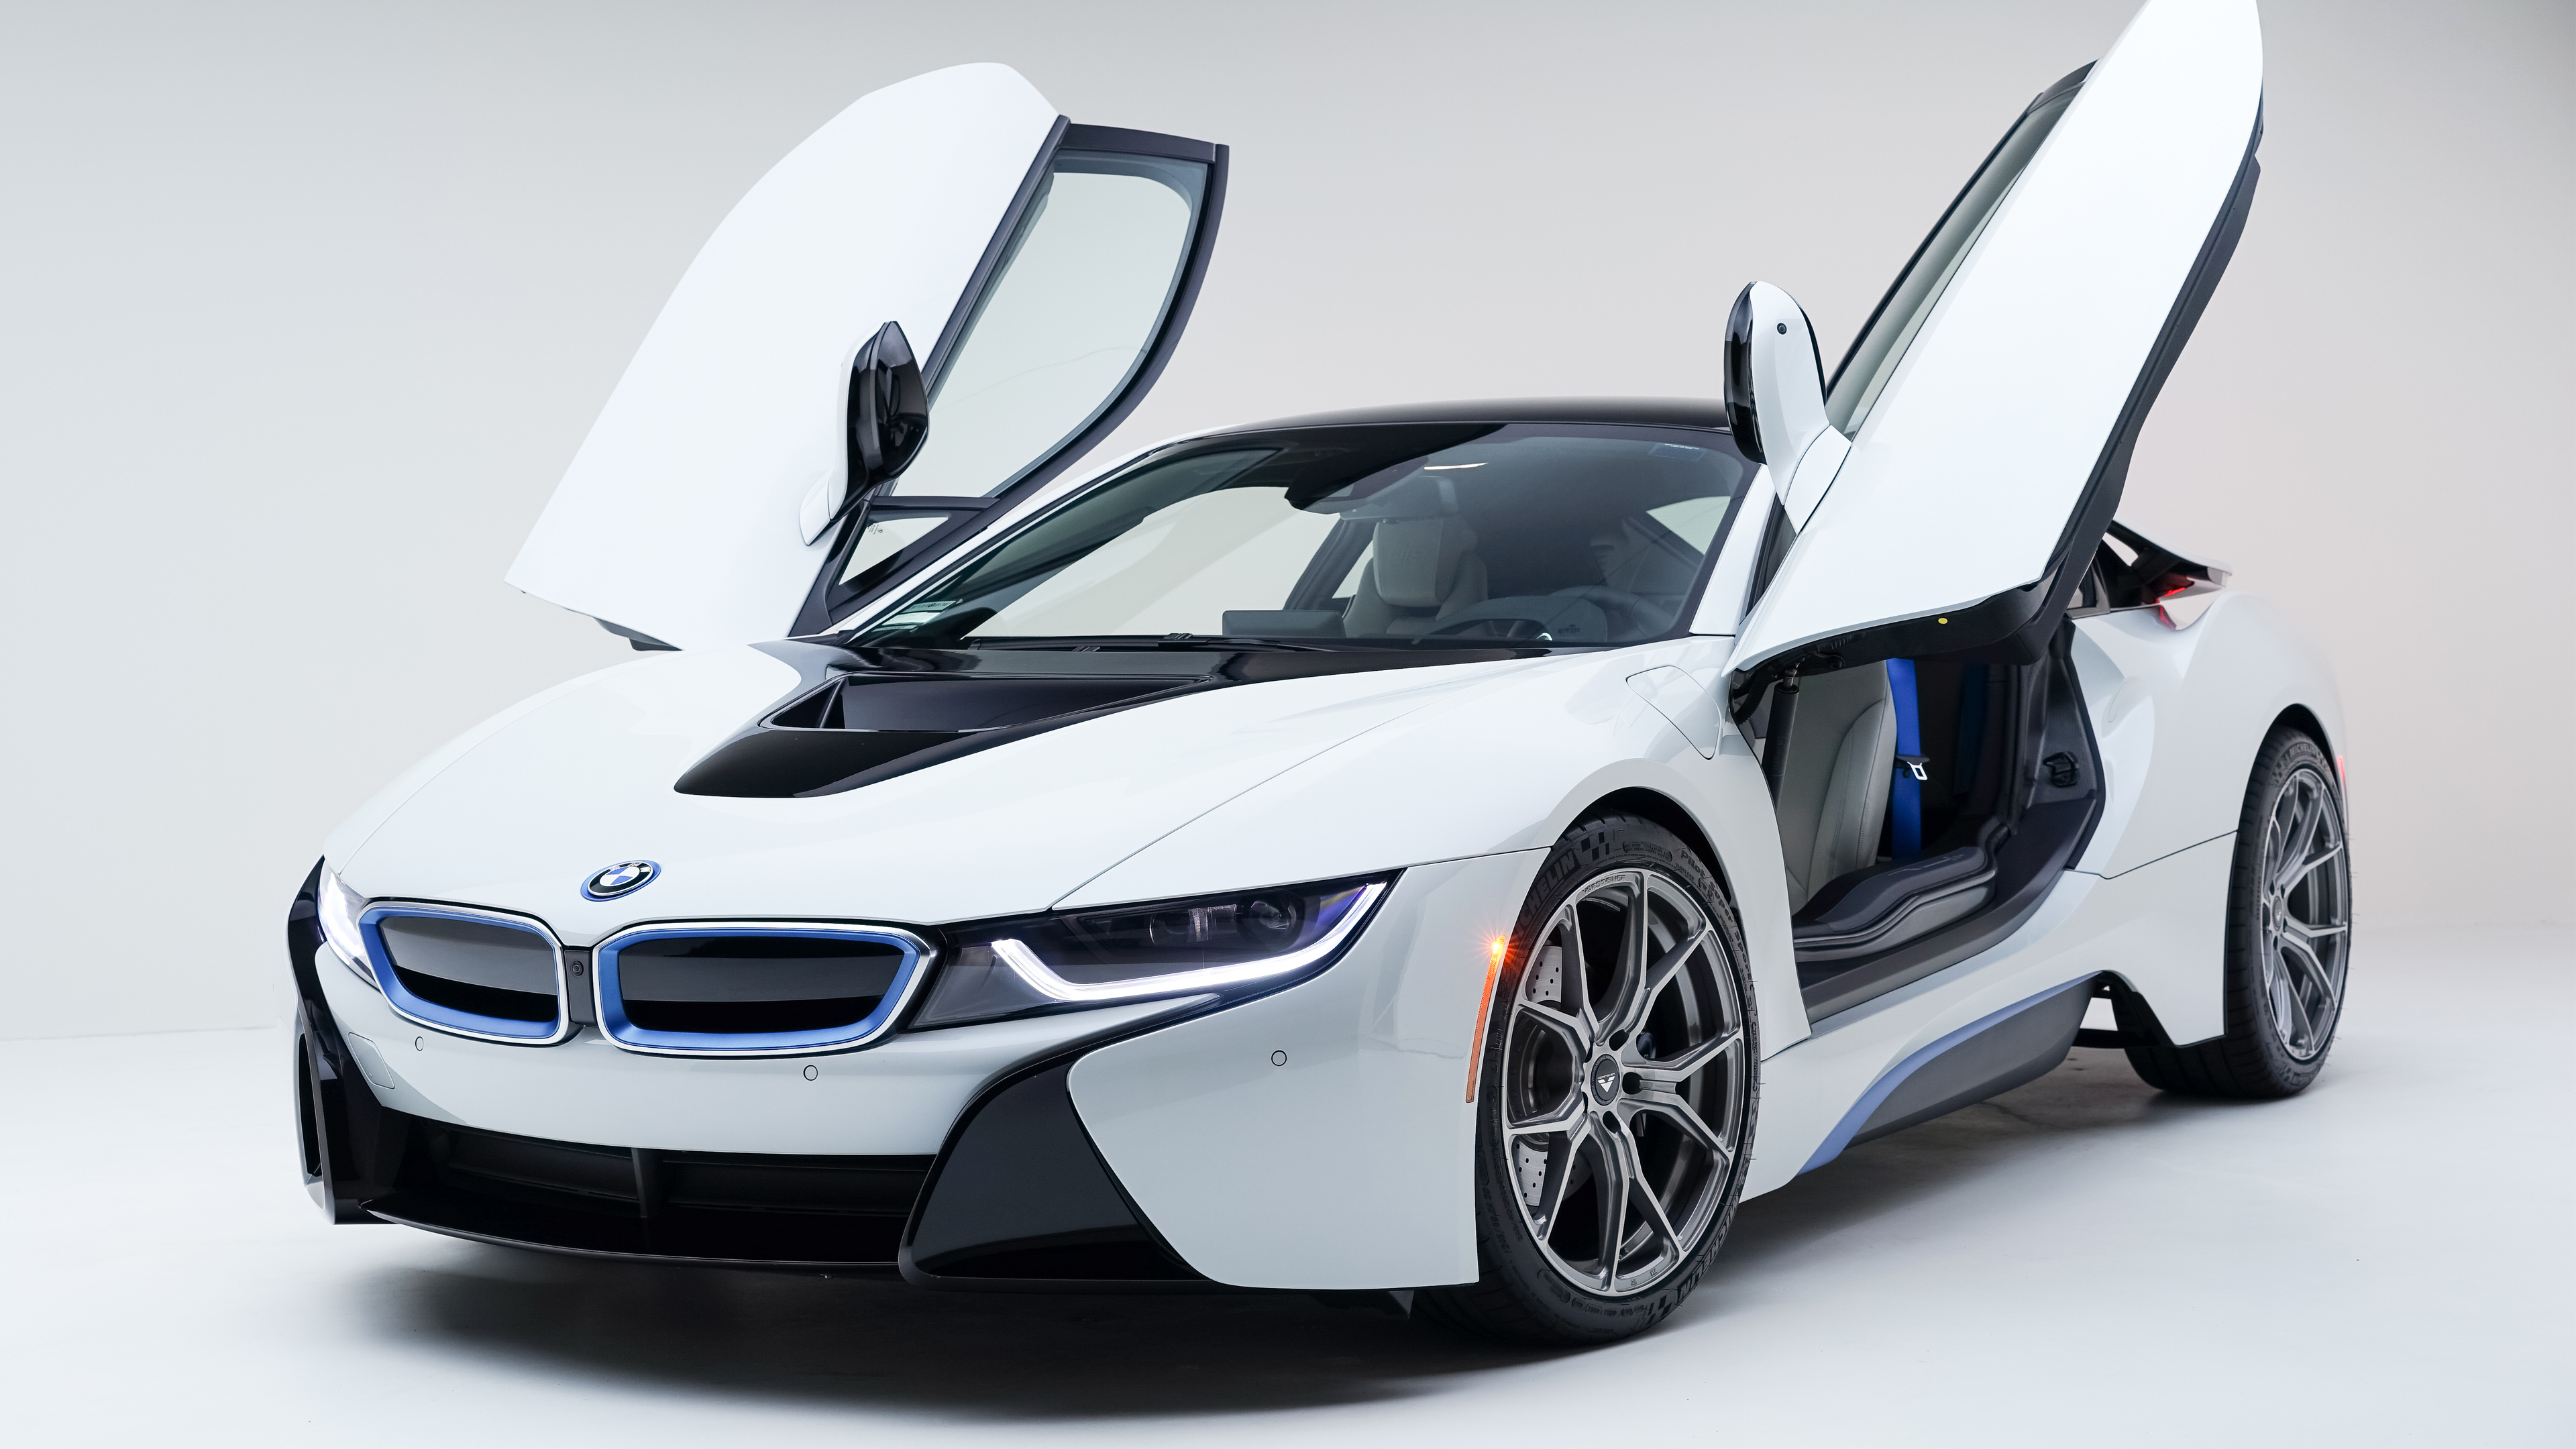 Vorsteiner Bmw I8 Wallpaper Hd Car Wallpapers Id 6410